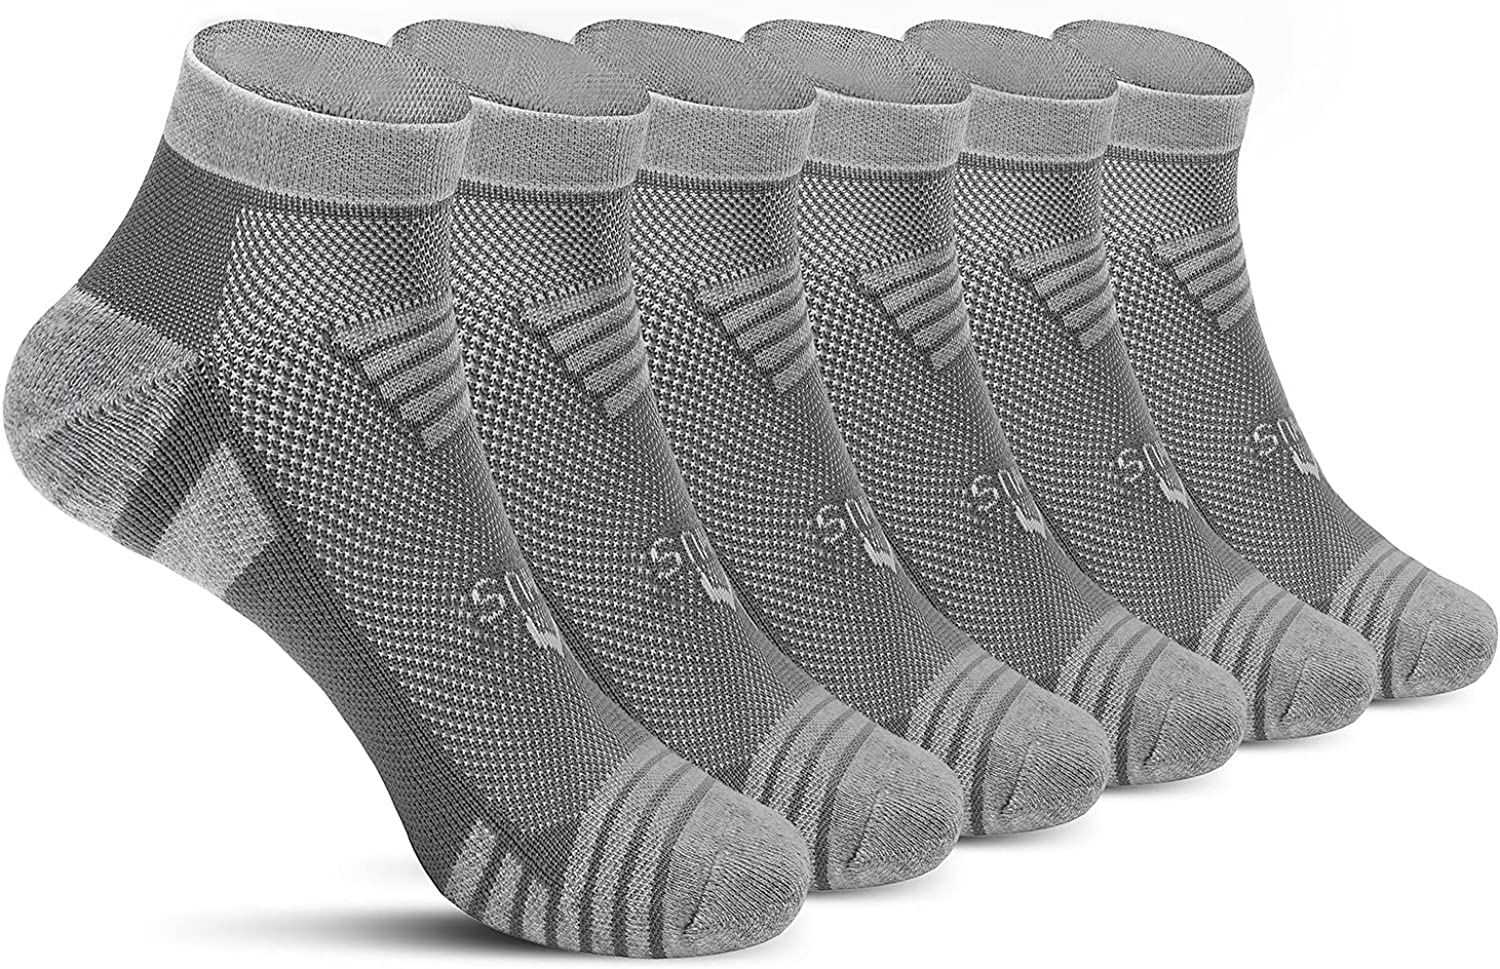 MWUS Indianapolis Choice Mall Men's Running Socks with Cushion Ankle Athlet 6 Sport Pack